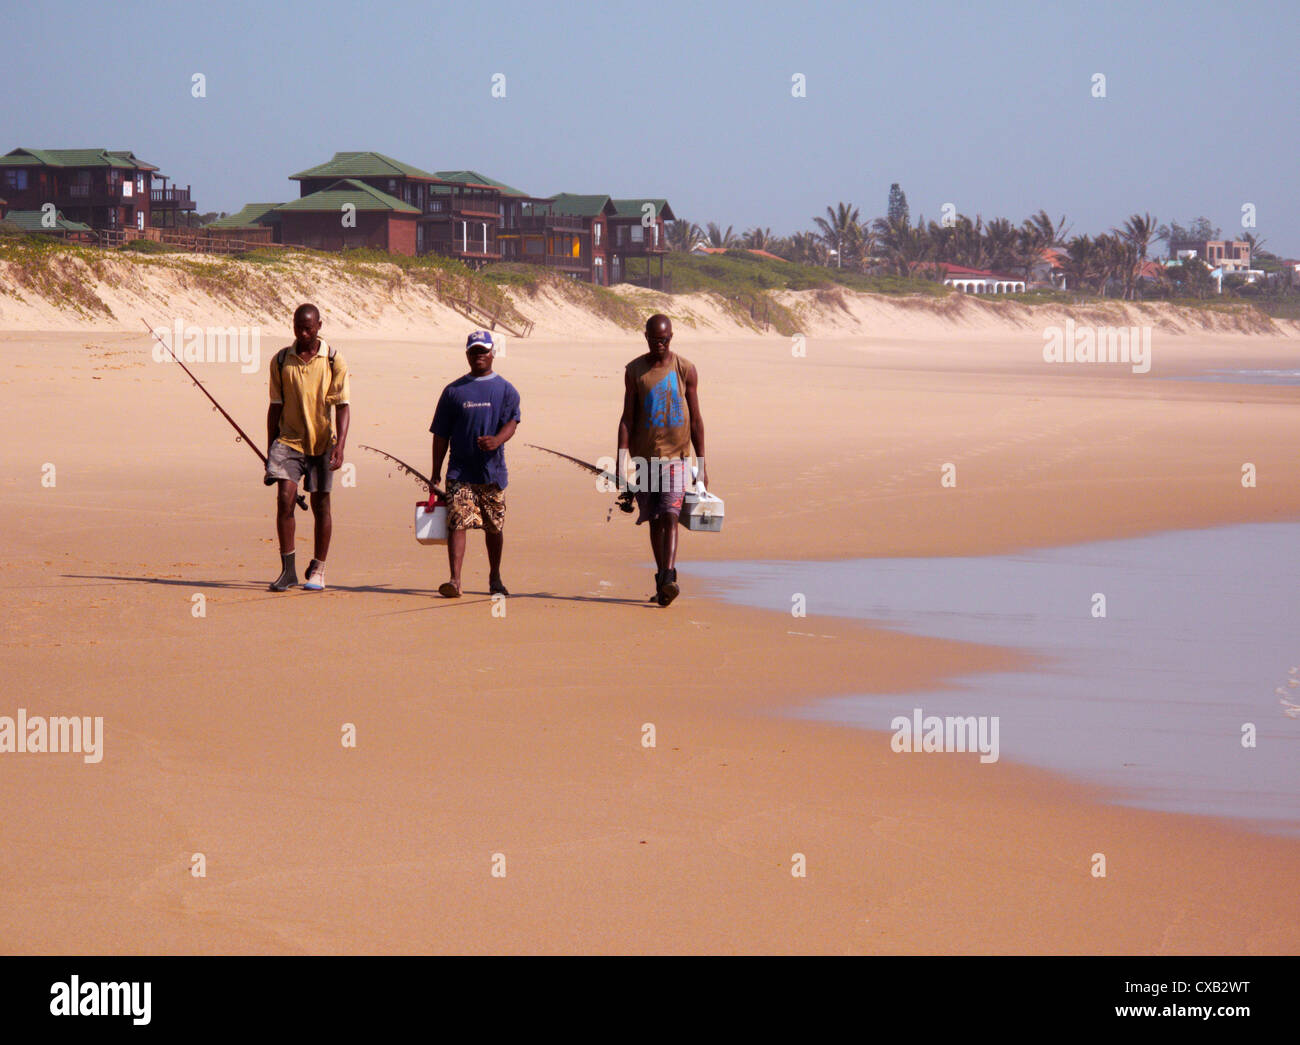 Les hommes aller à la pêche au Coco Cabanas beach resort. Ponta do Ouro, dans le sud du Mozambique. Photo Stock